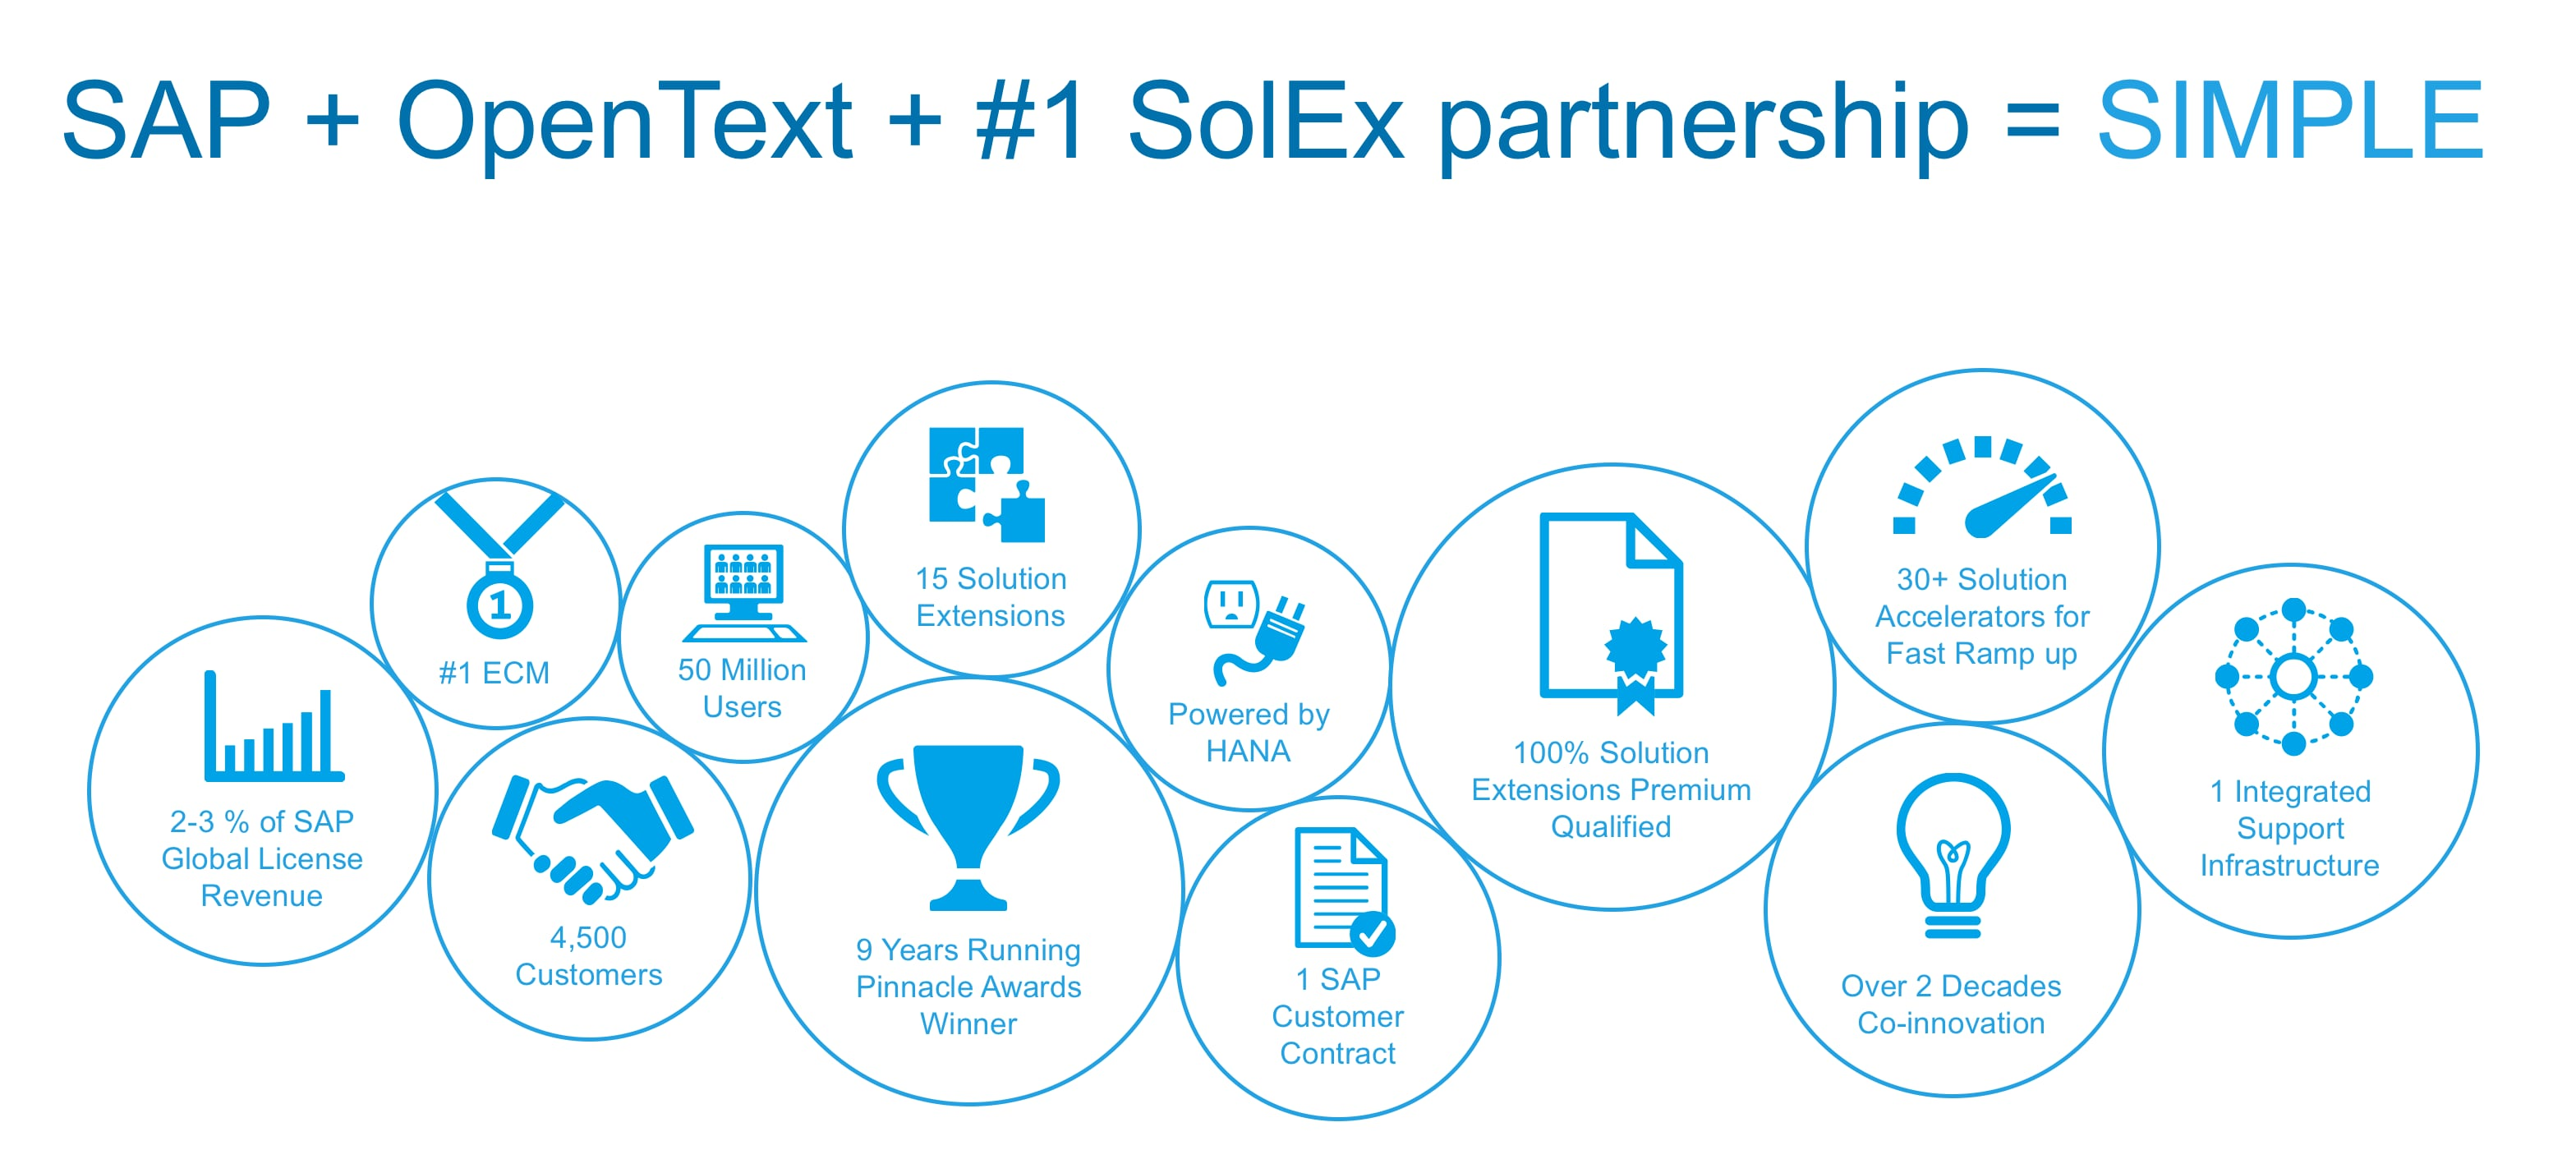 Solex Partnership